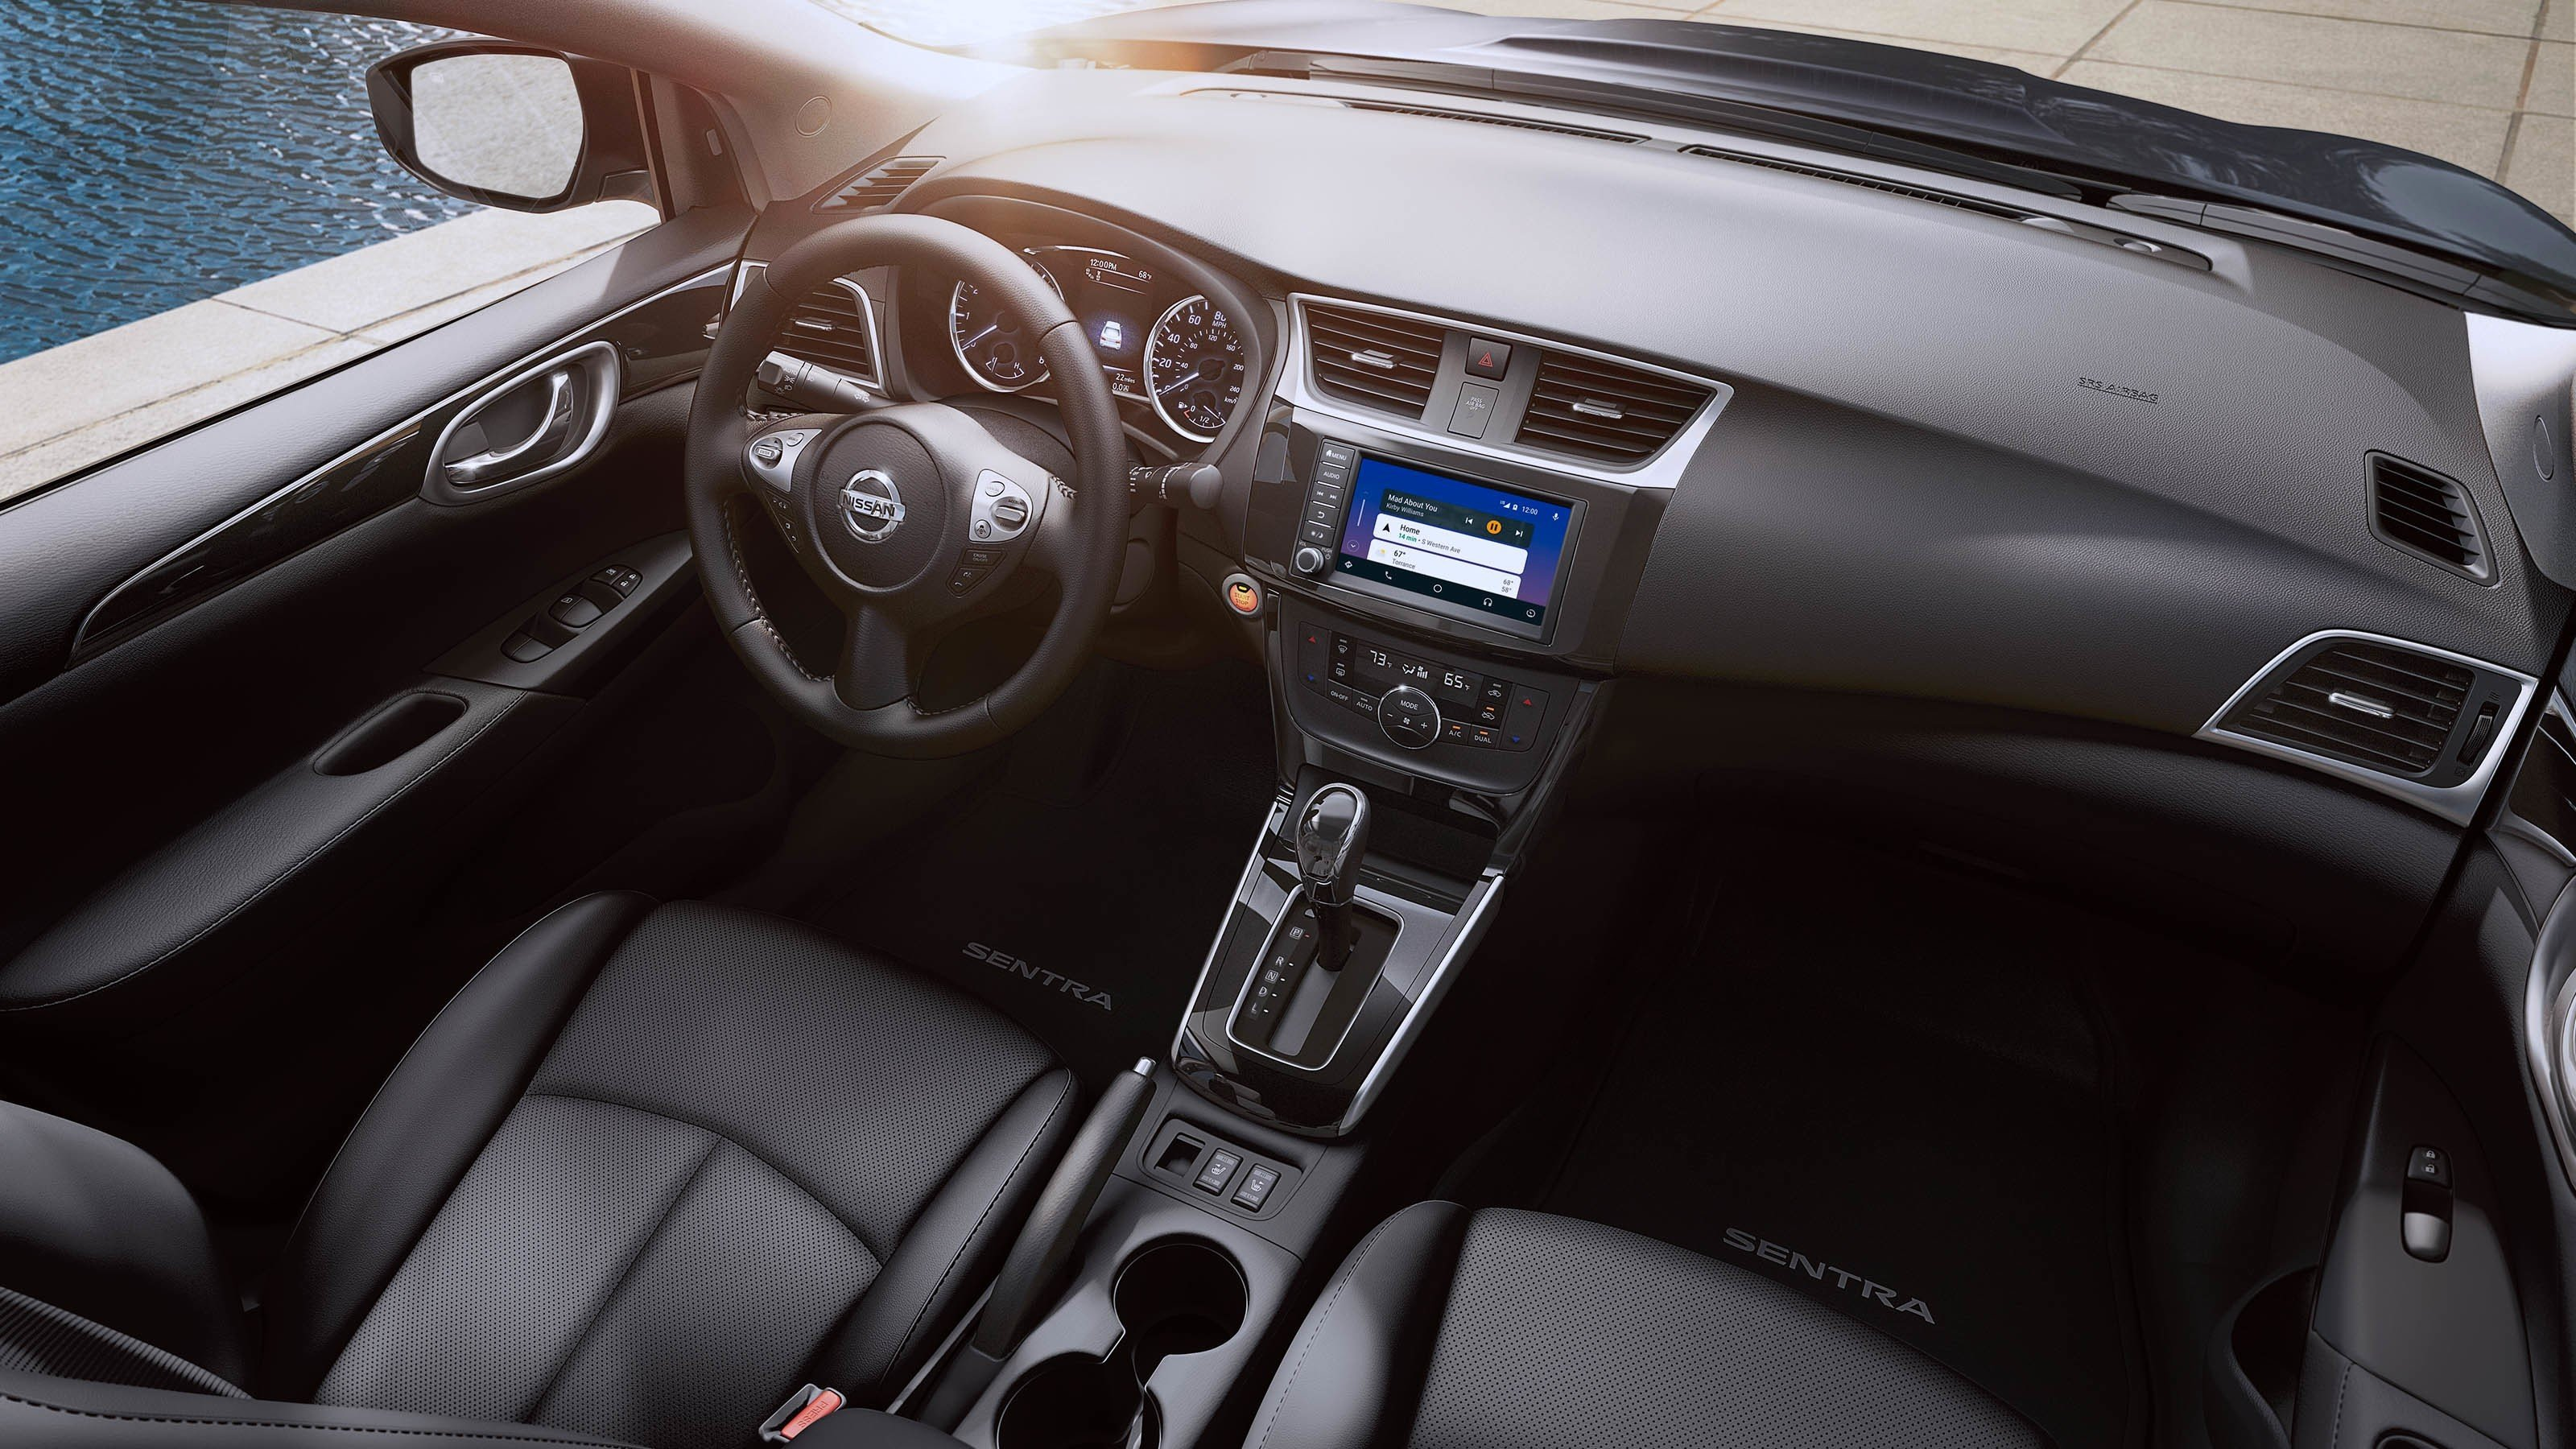 2018 Nissan Sentra Safety and Special Features